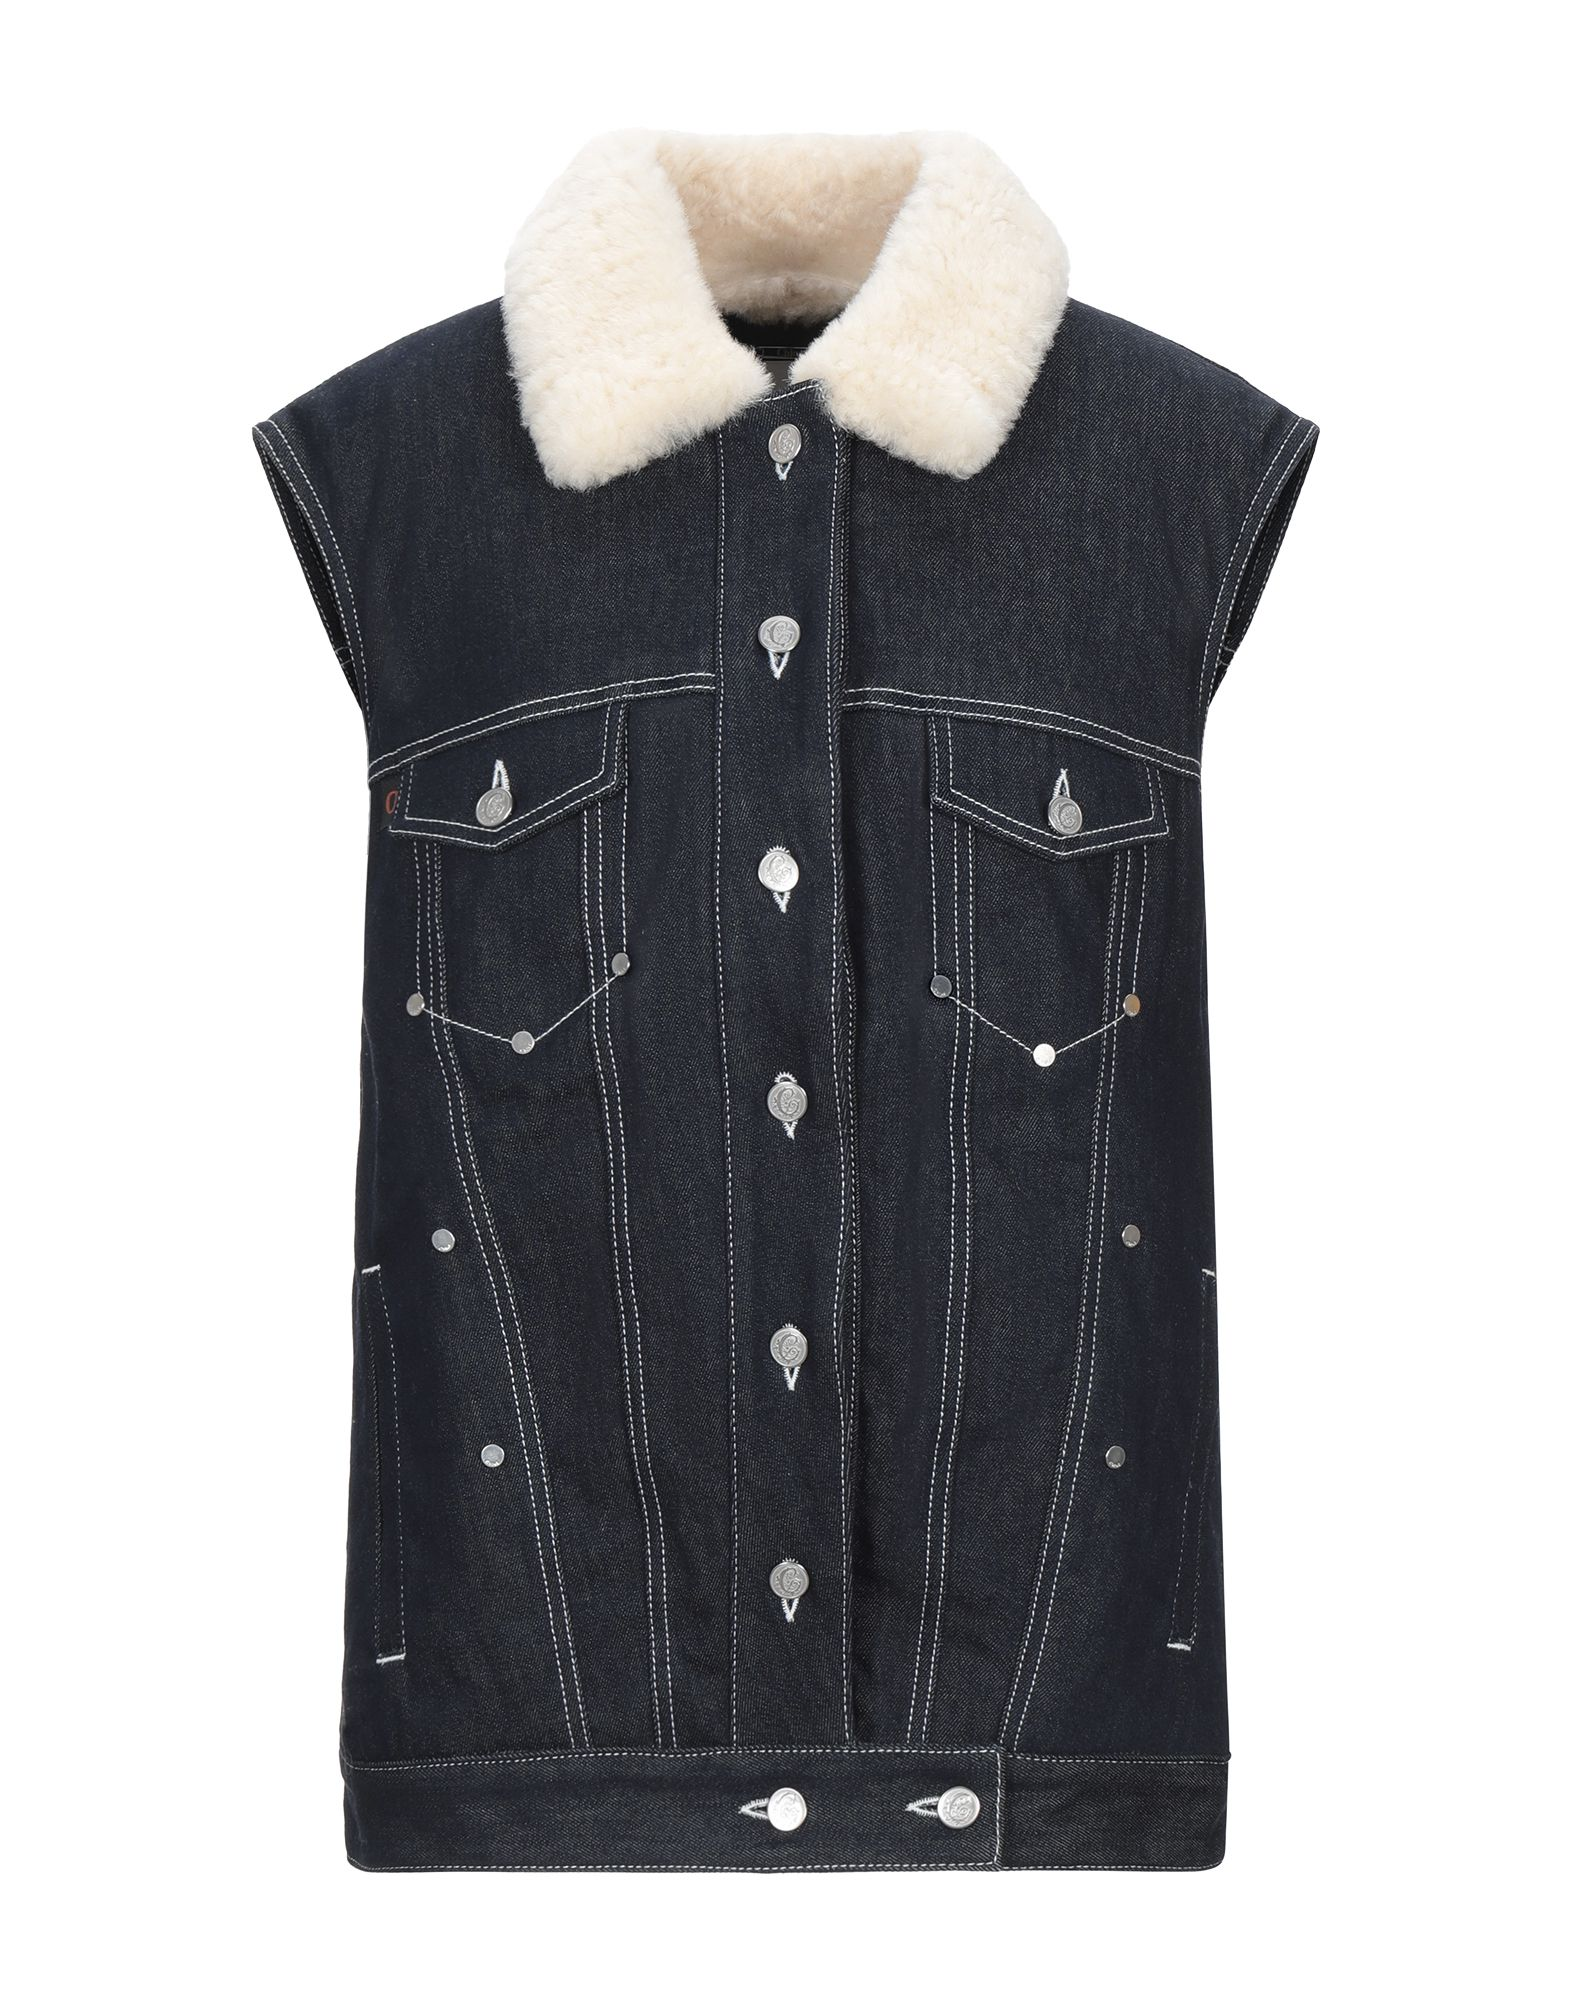 CHLOÉ Denim outerwear. denim, no appliqués, solid color, dark wash, sleeveless, front closure, button closing, multipockets, internal padding, contains non-textile parts of animal origin, single-breasted, classic neckline, stretch. 98% Cotton, 2% Elastane, Shearling